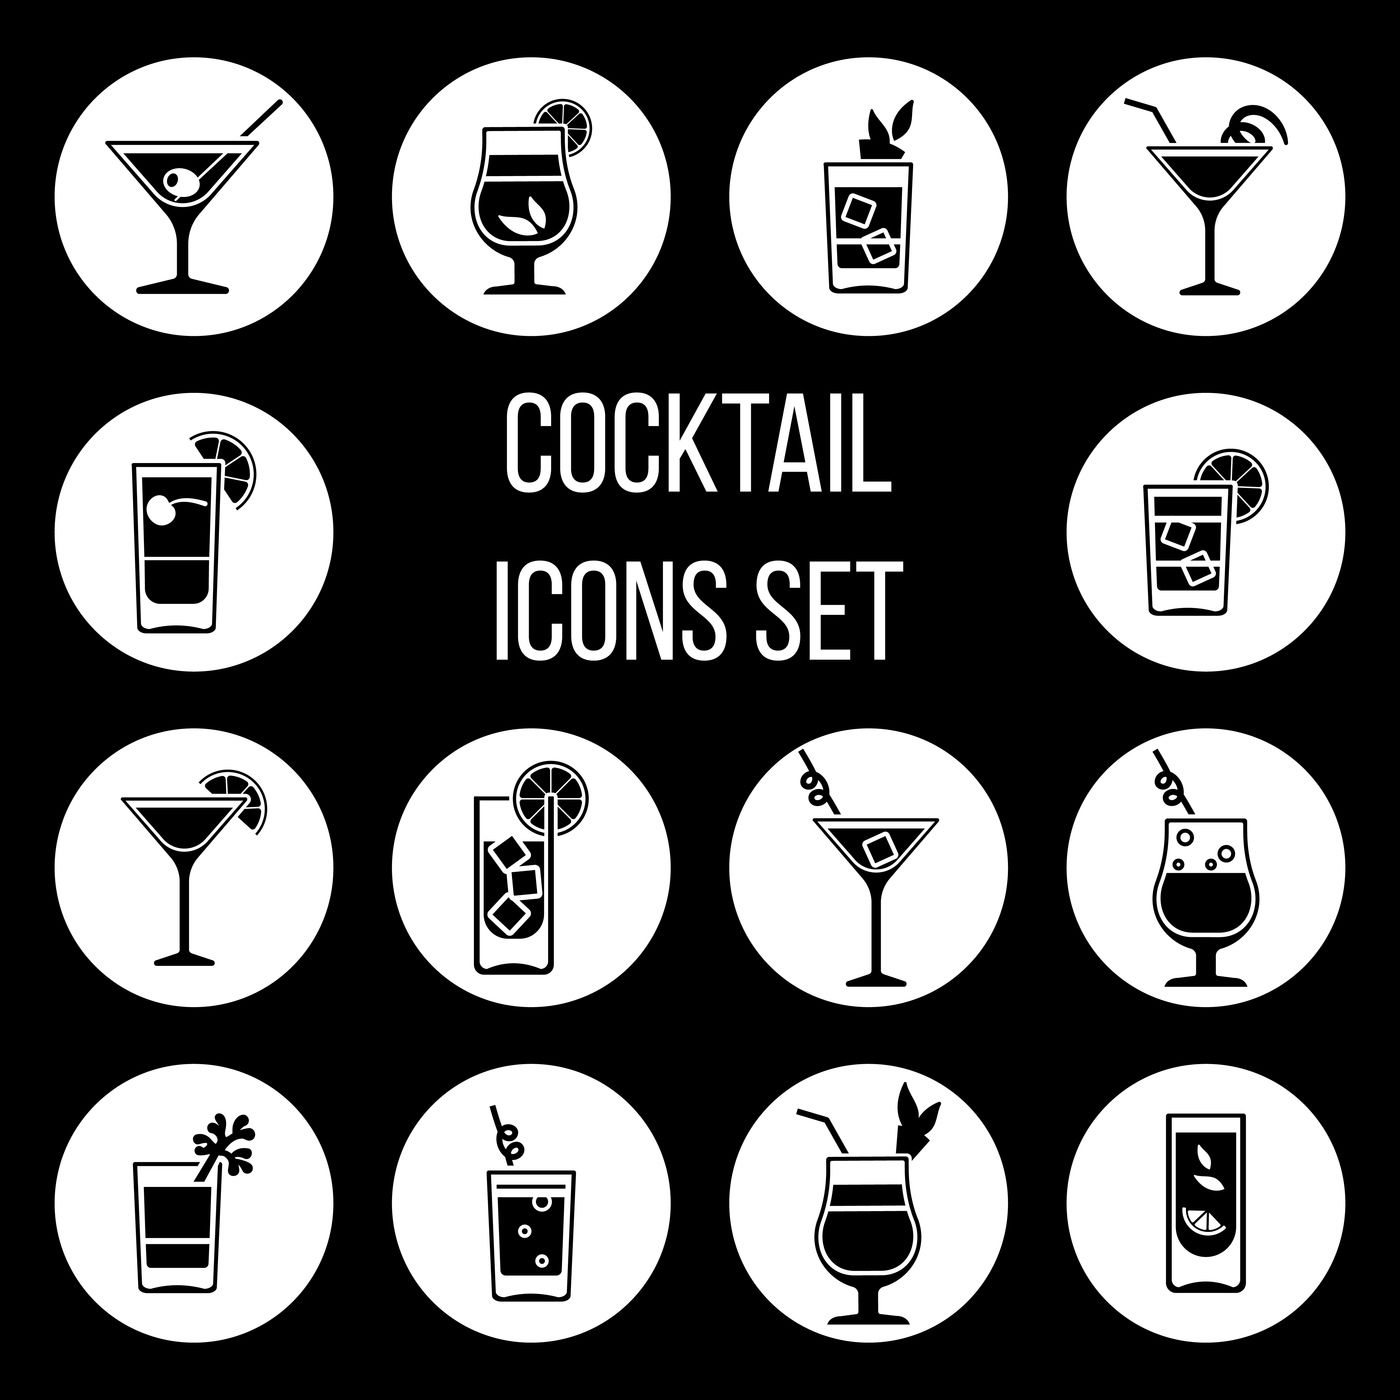 Cocktail Vector Icons Set In Black And White By Microvector